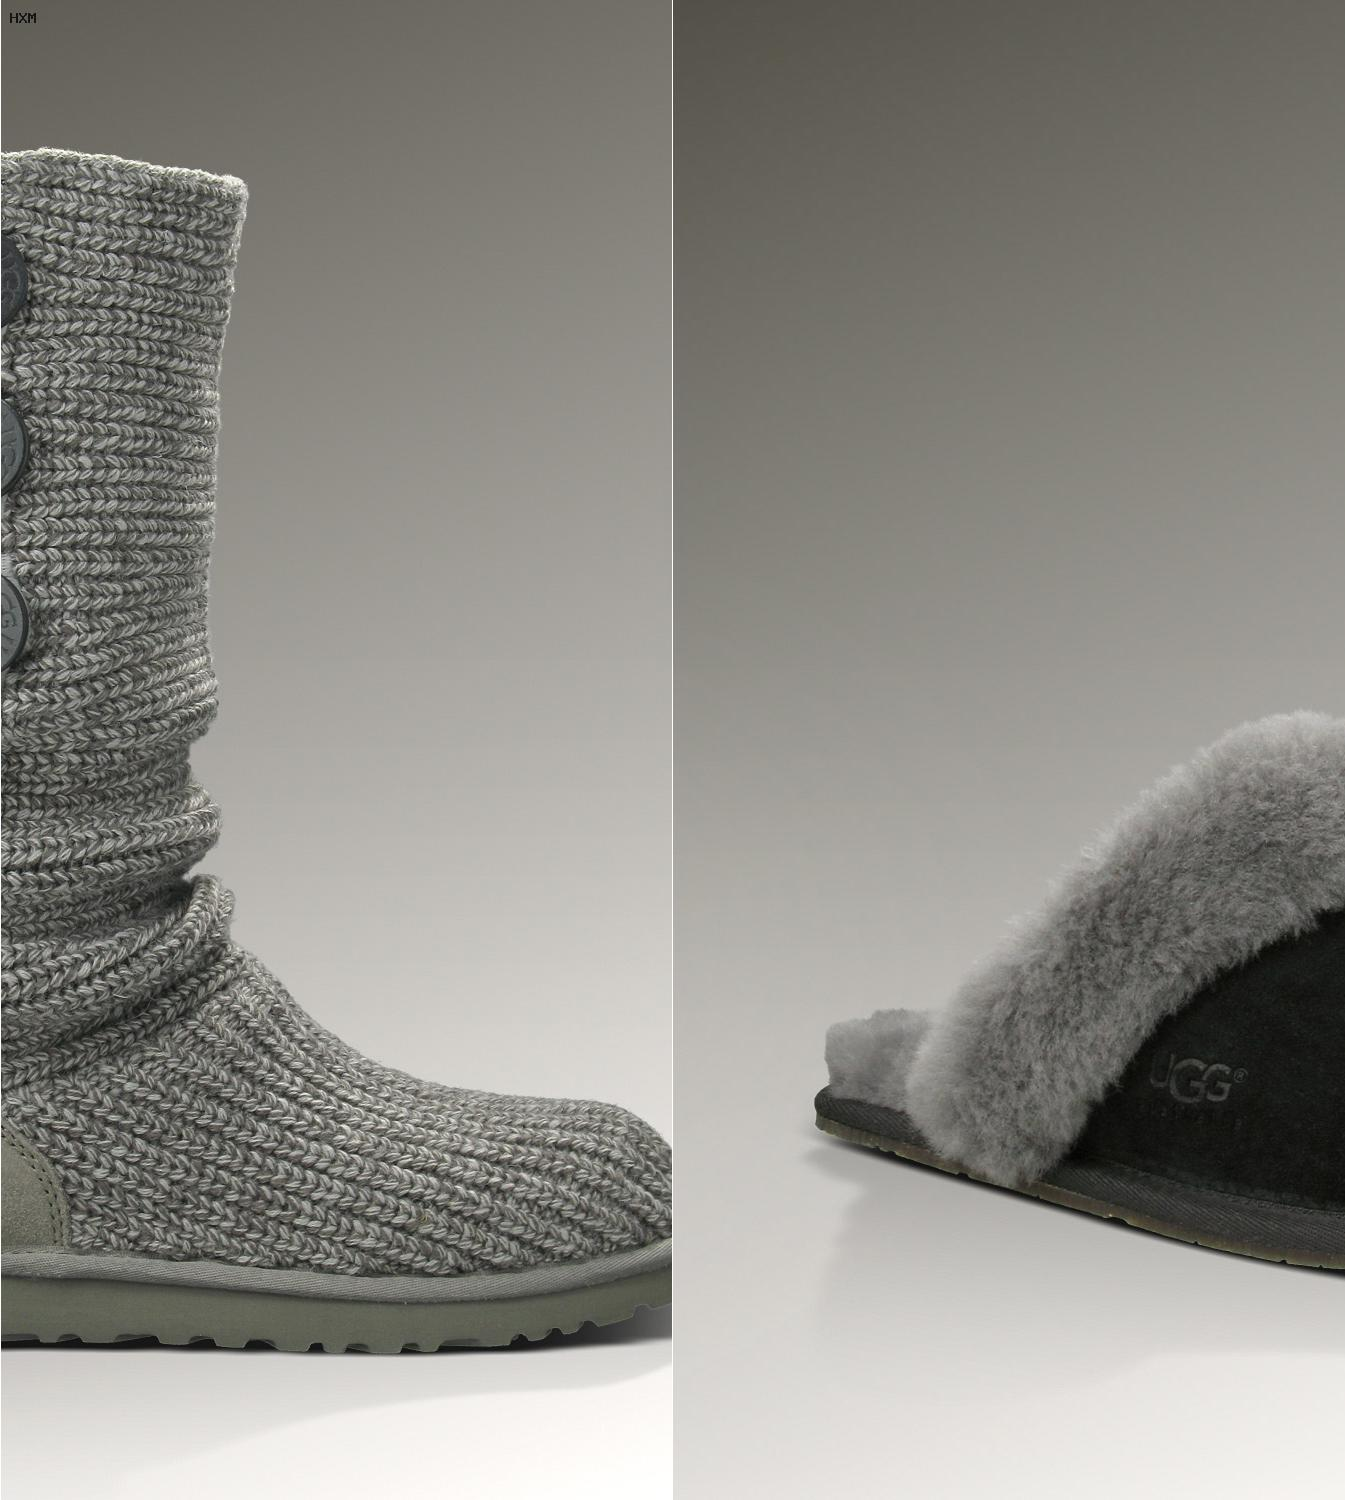 6b9c67066fd chaussures ugg soldes